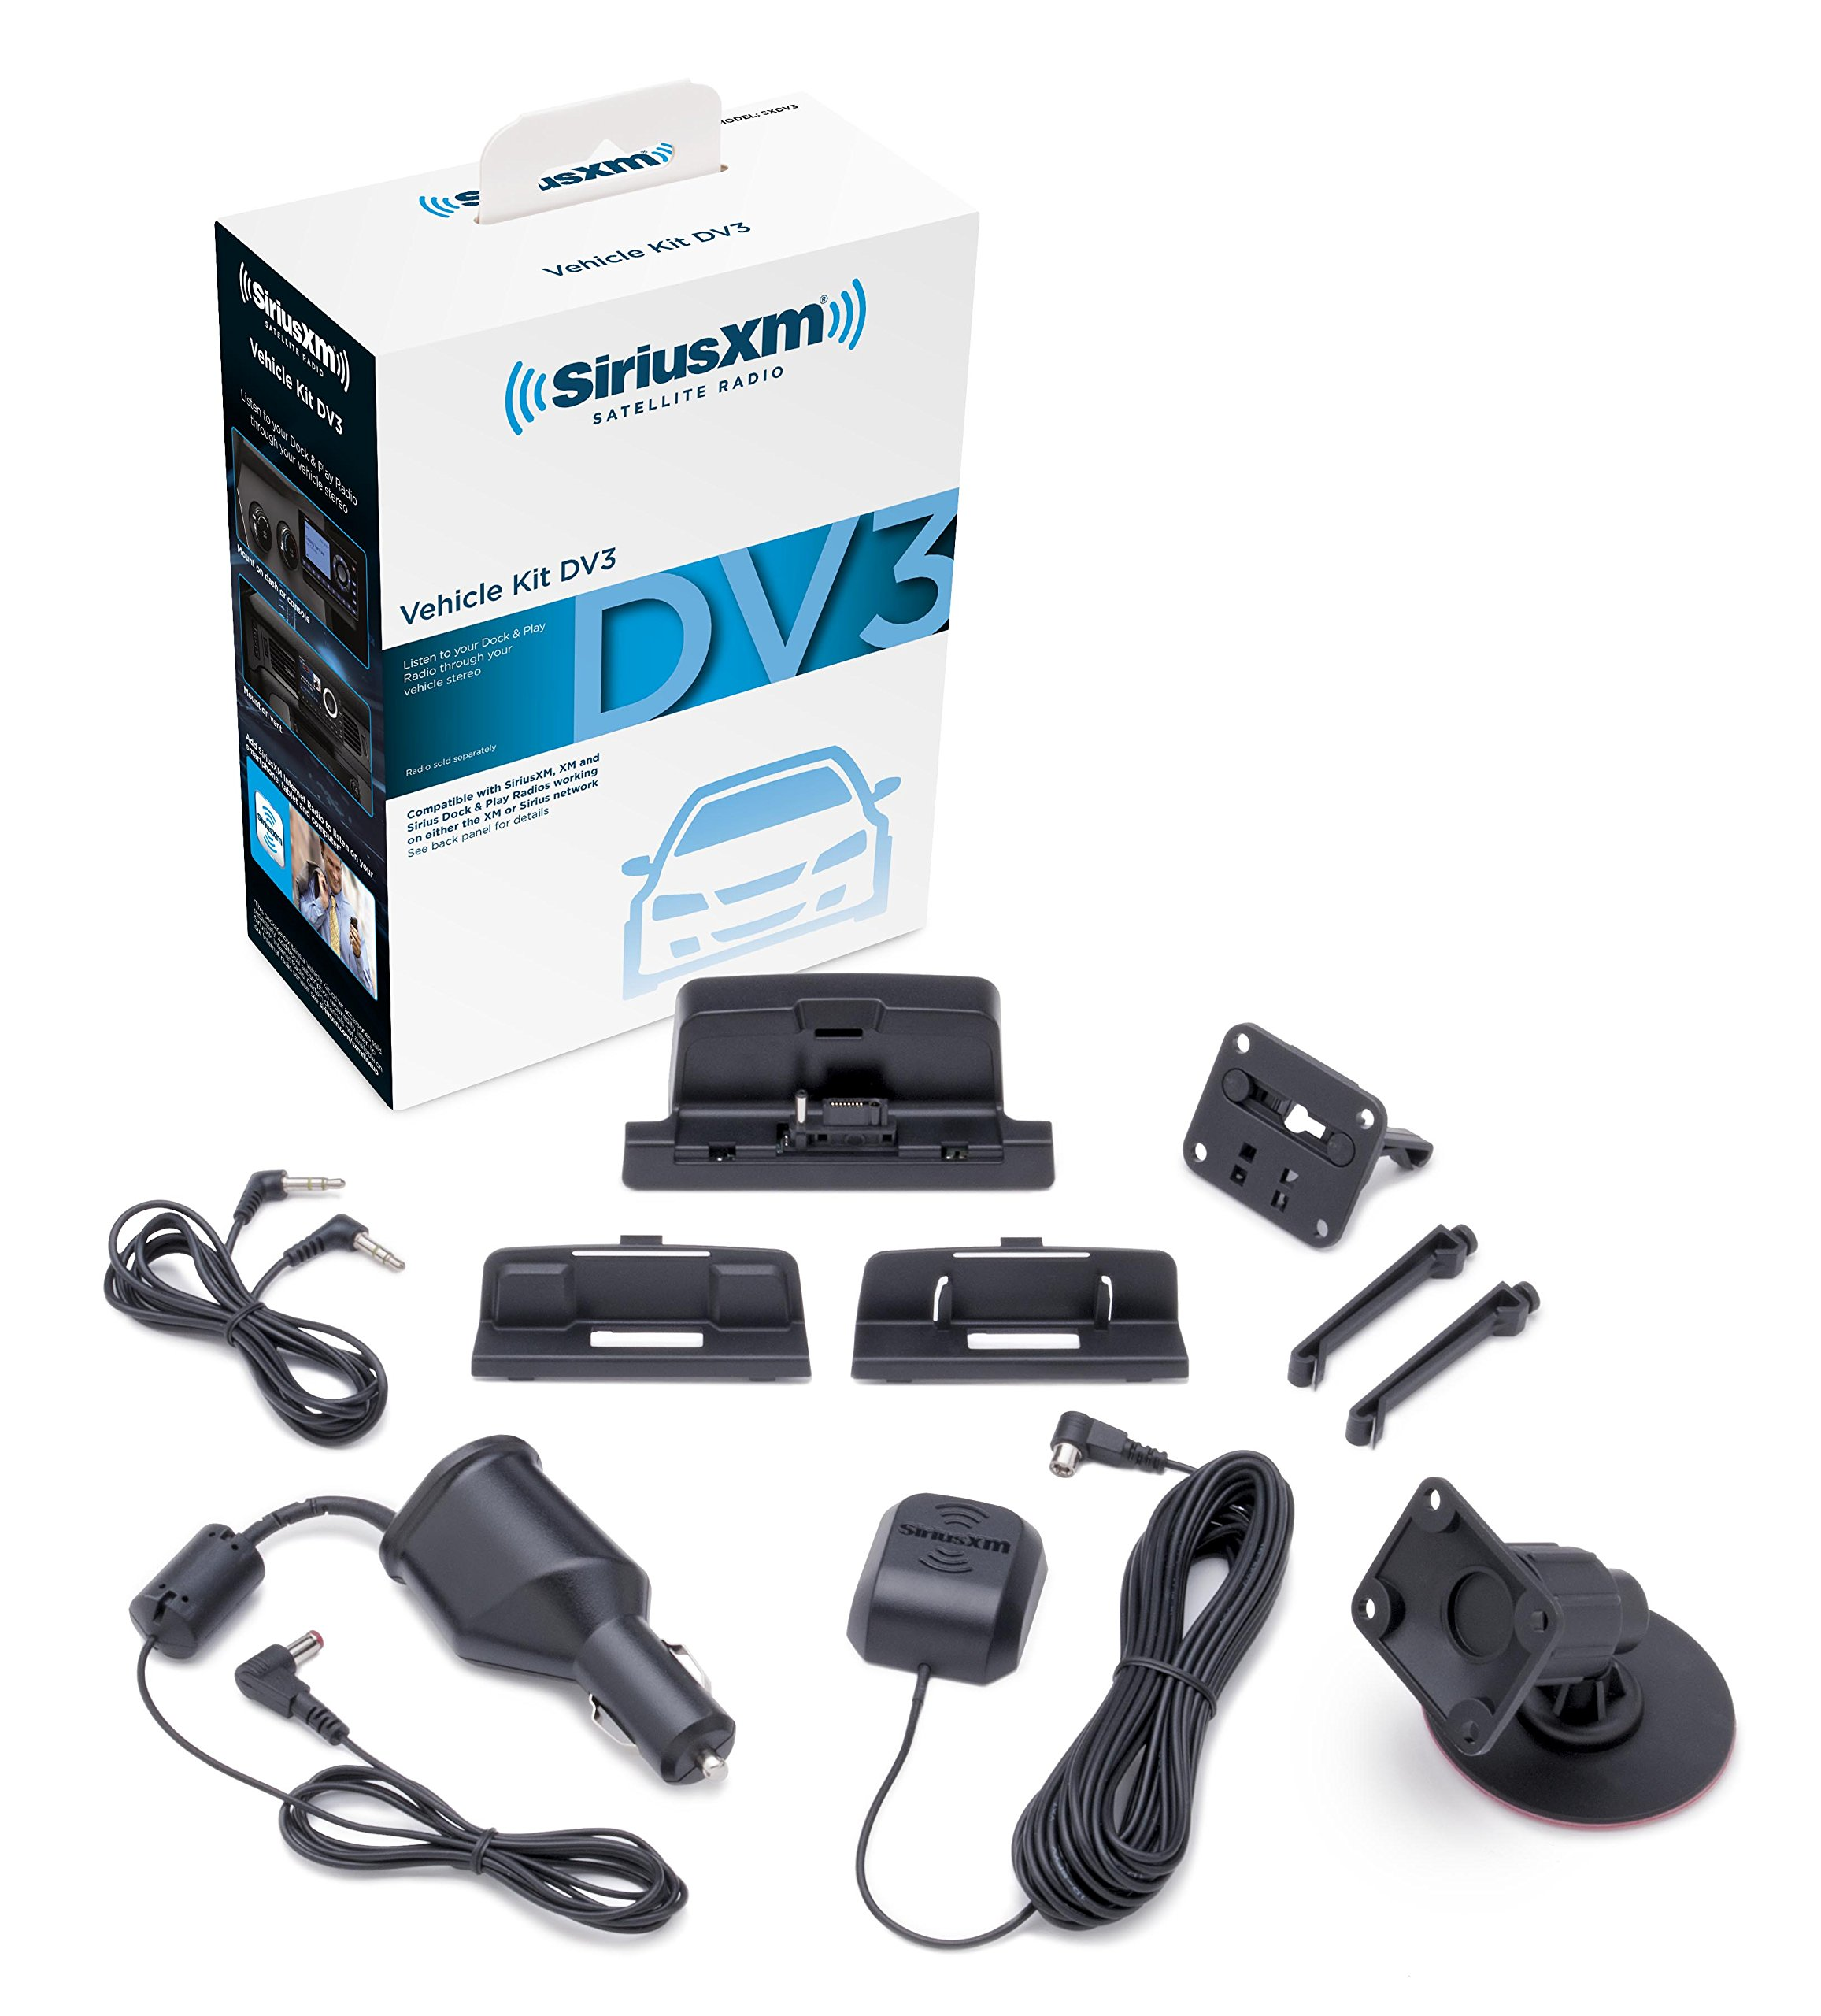 SiriusXM SXDV3 Satellite Radio Vehicle Mounting Kit with Dock and Charging Cable (Black) by SiriusXM